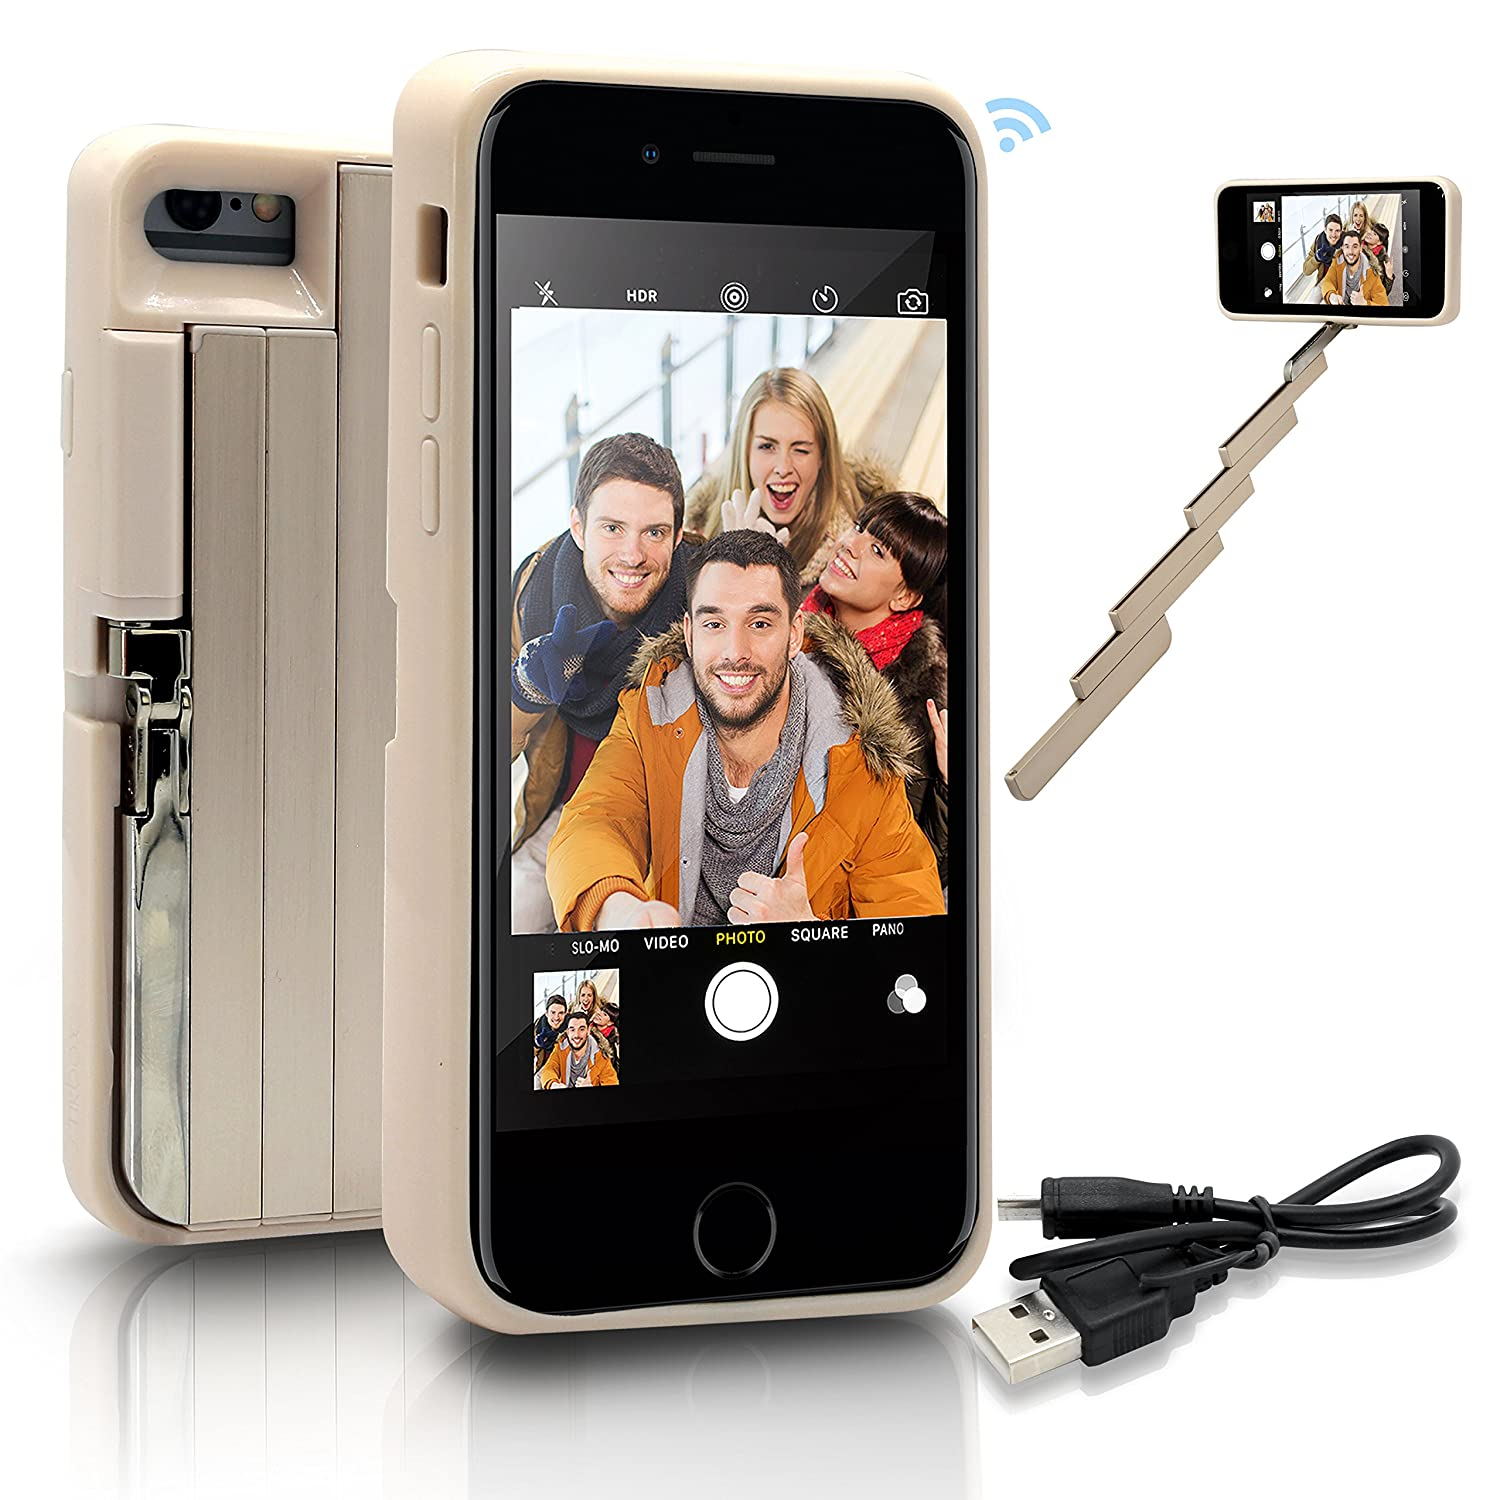 """StikBox Selfie Stick iPhone Case, Extendable Monopod W/Built-in Bluetooth Trigger, Lightweight, Rechargeable, Wireless, Pocket Size, 360 Degree Rotation & 20"""" Extension for iPhone 7/7S/8 (IPE7GOLD)"""